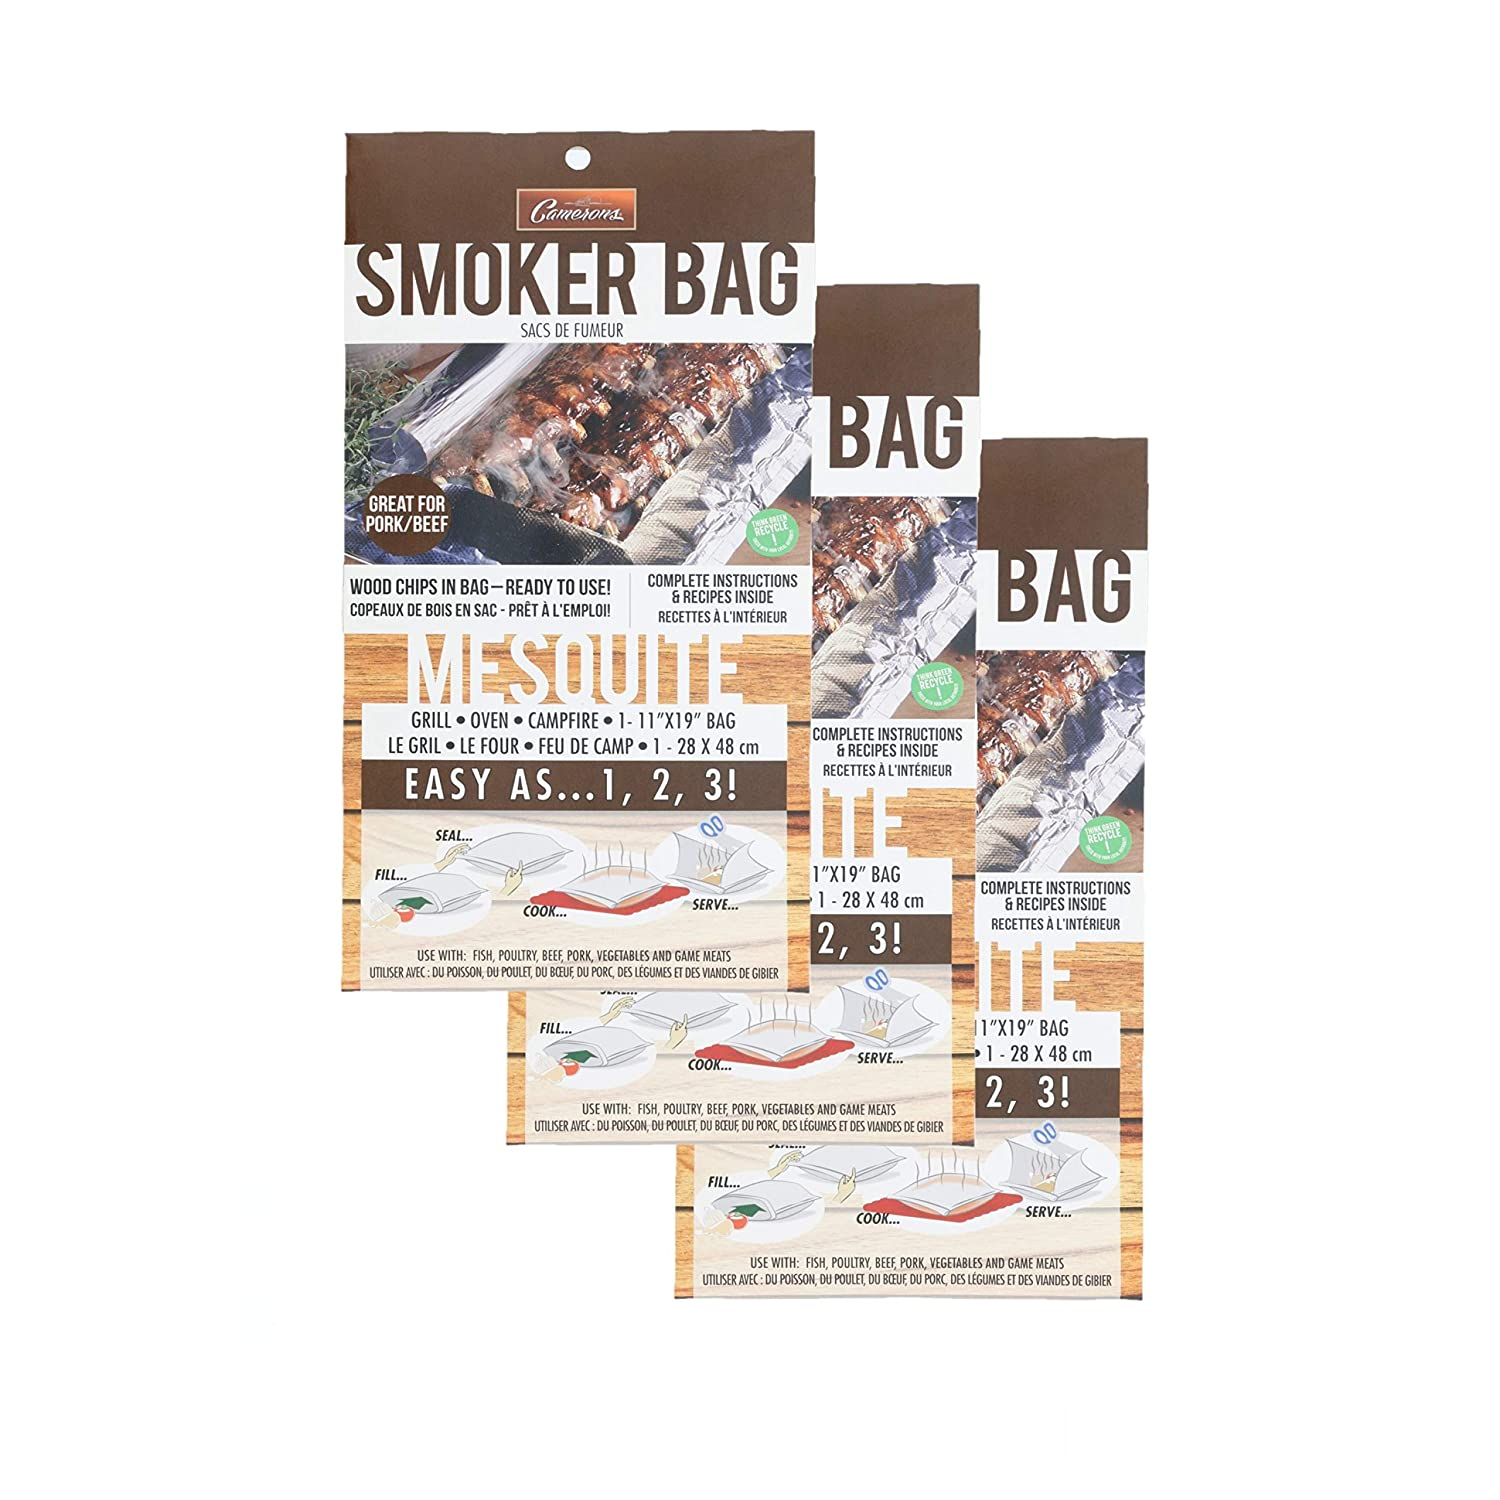 Camerons Smoker Bags - Set of 3 Mesquite Smoking Bags for Indoor or Outdoor Use - Easily Infuse Natural Wood Flavor